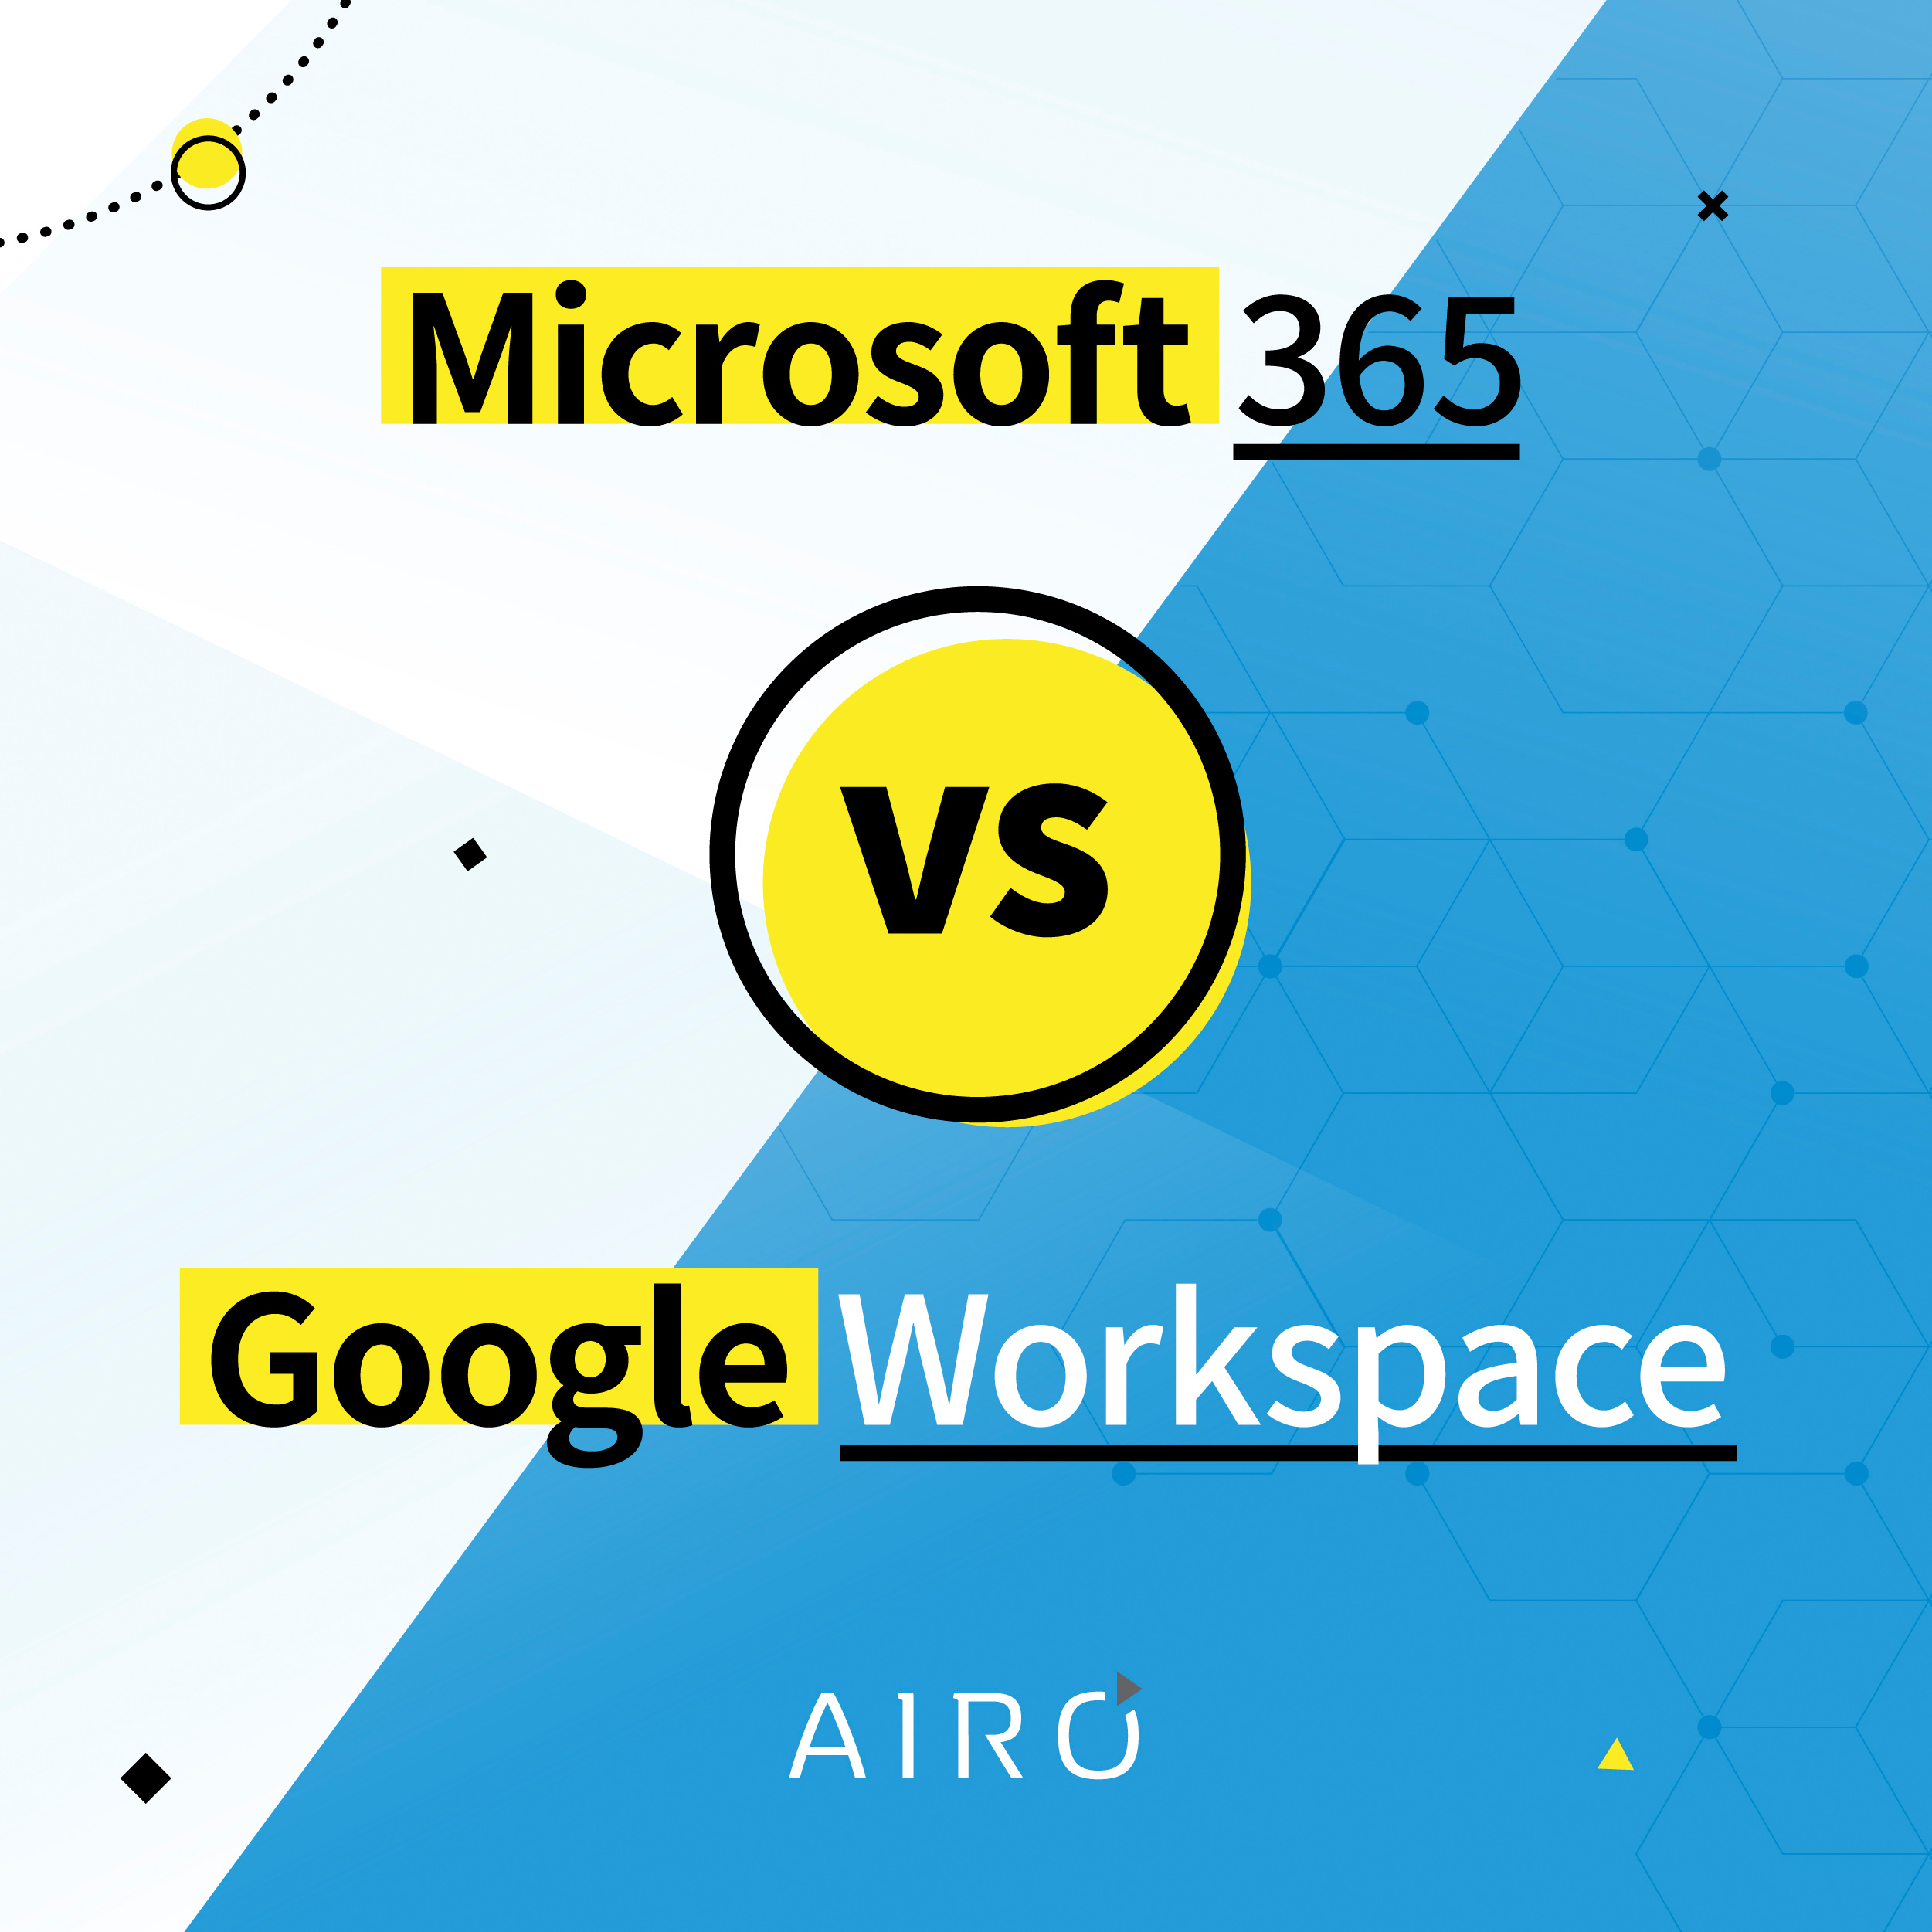 Microsoft 365 vs Google Workspace: Which is better for your business?